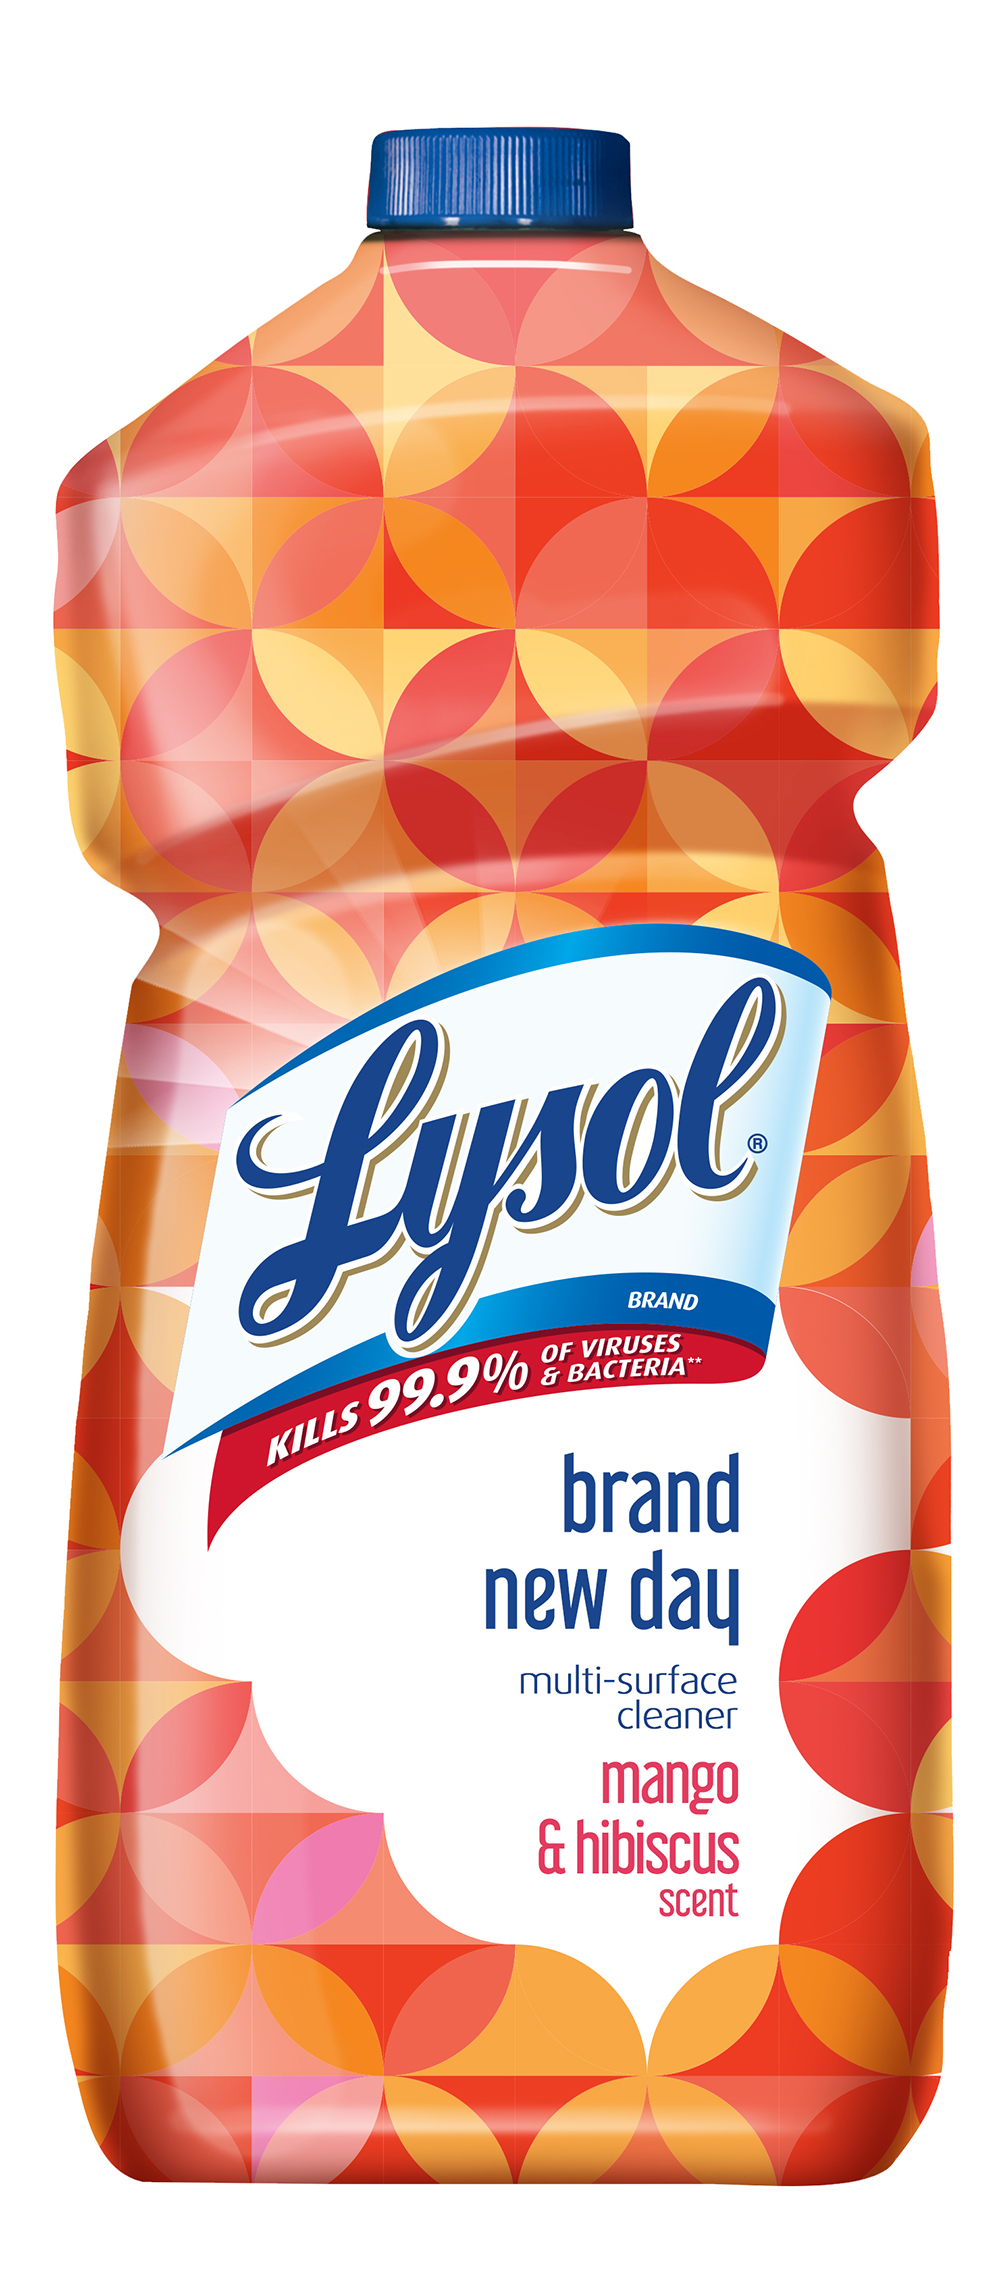 Lysol Multi-Surface Cleaner, Mango & Hibiscus, 48oz, Brand New Day